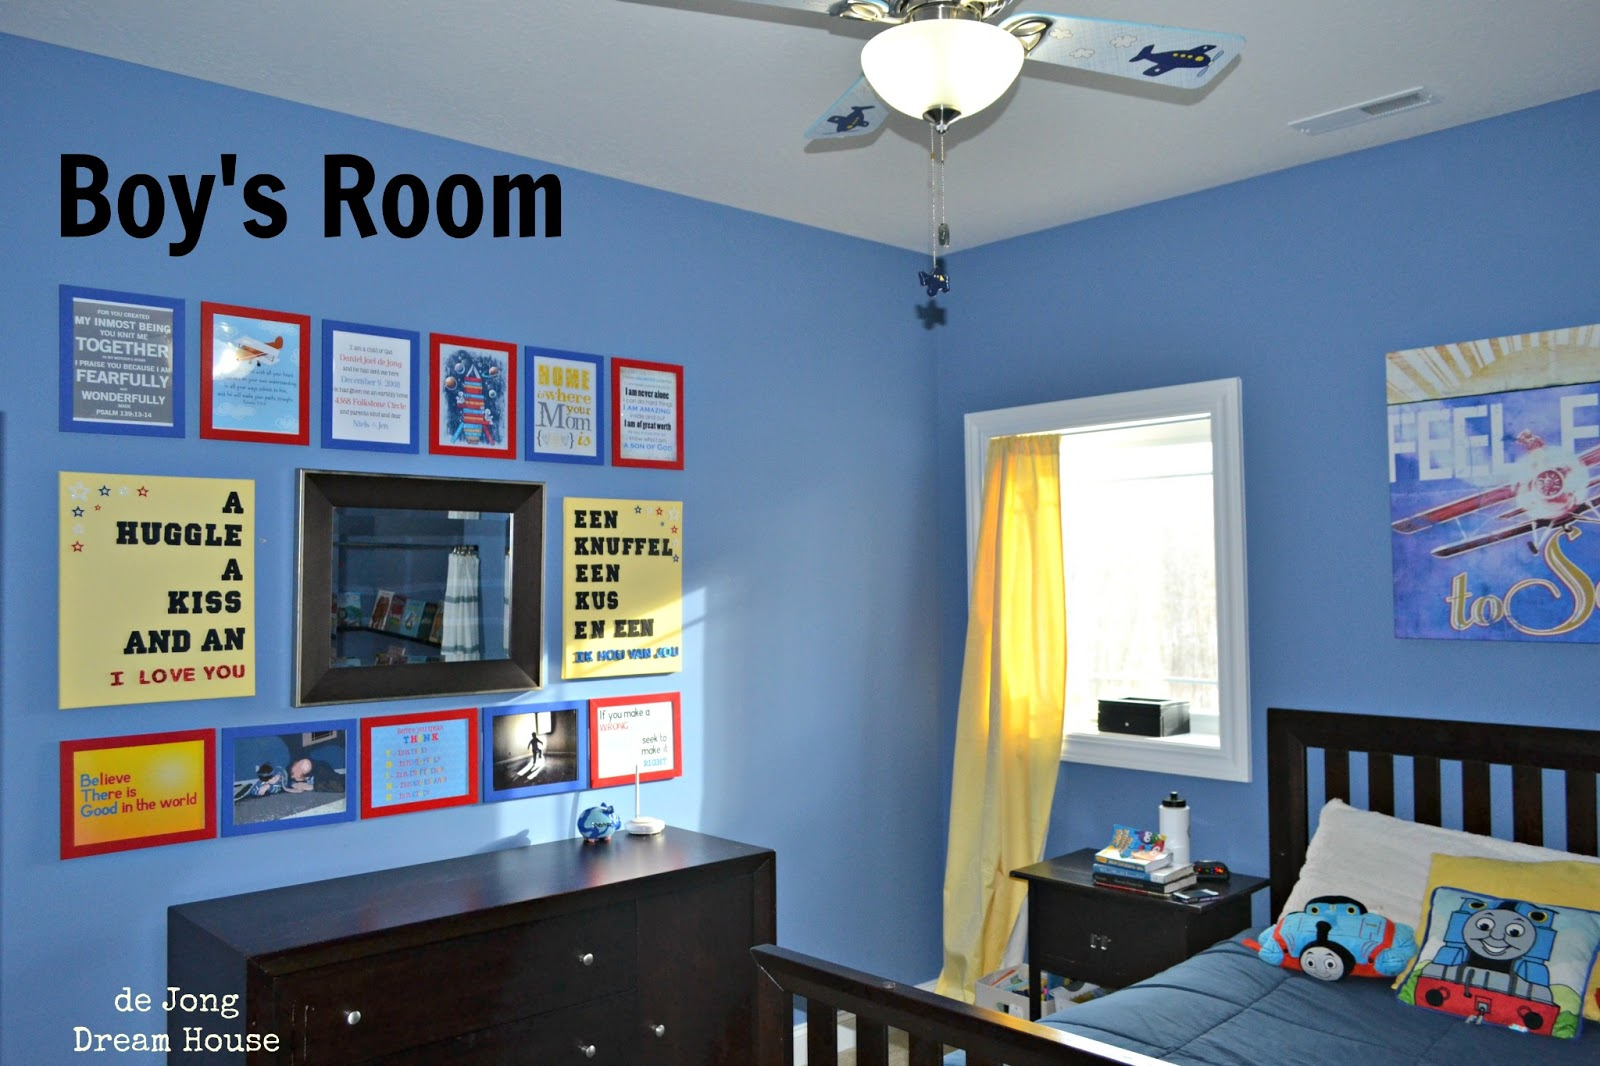 De jong dream house tour boy 39 s room 5 year old boy room decoration